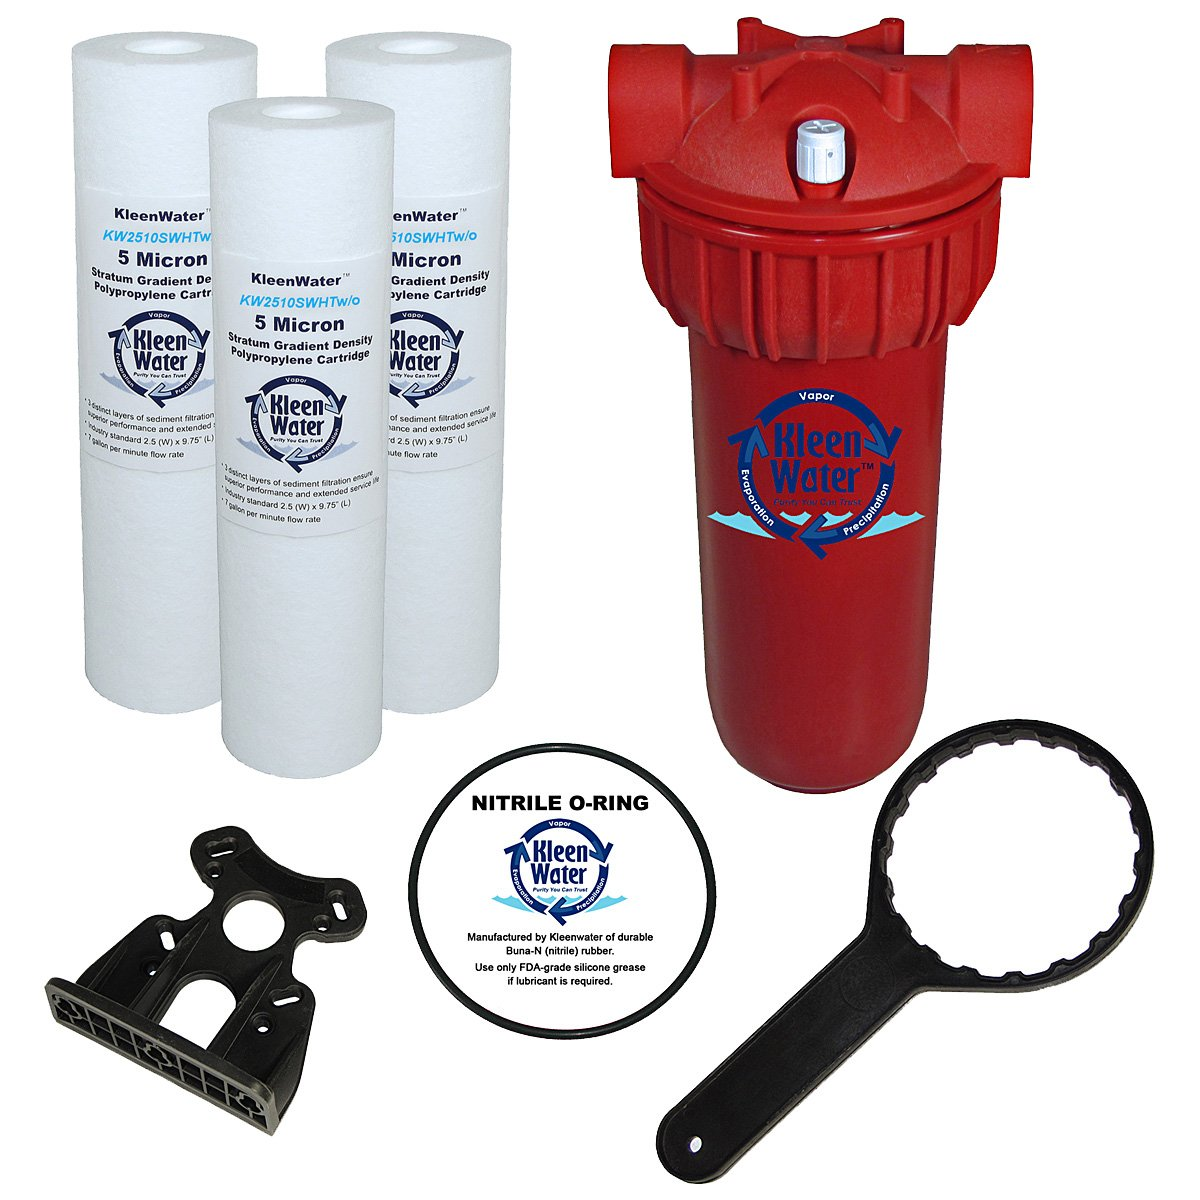 KleenWater Hot Water Filter (1), Mounting Bracket (1), 5 Micron High Temp Cartridges (3), Spare Oring (1), Filter Wrench (1)